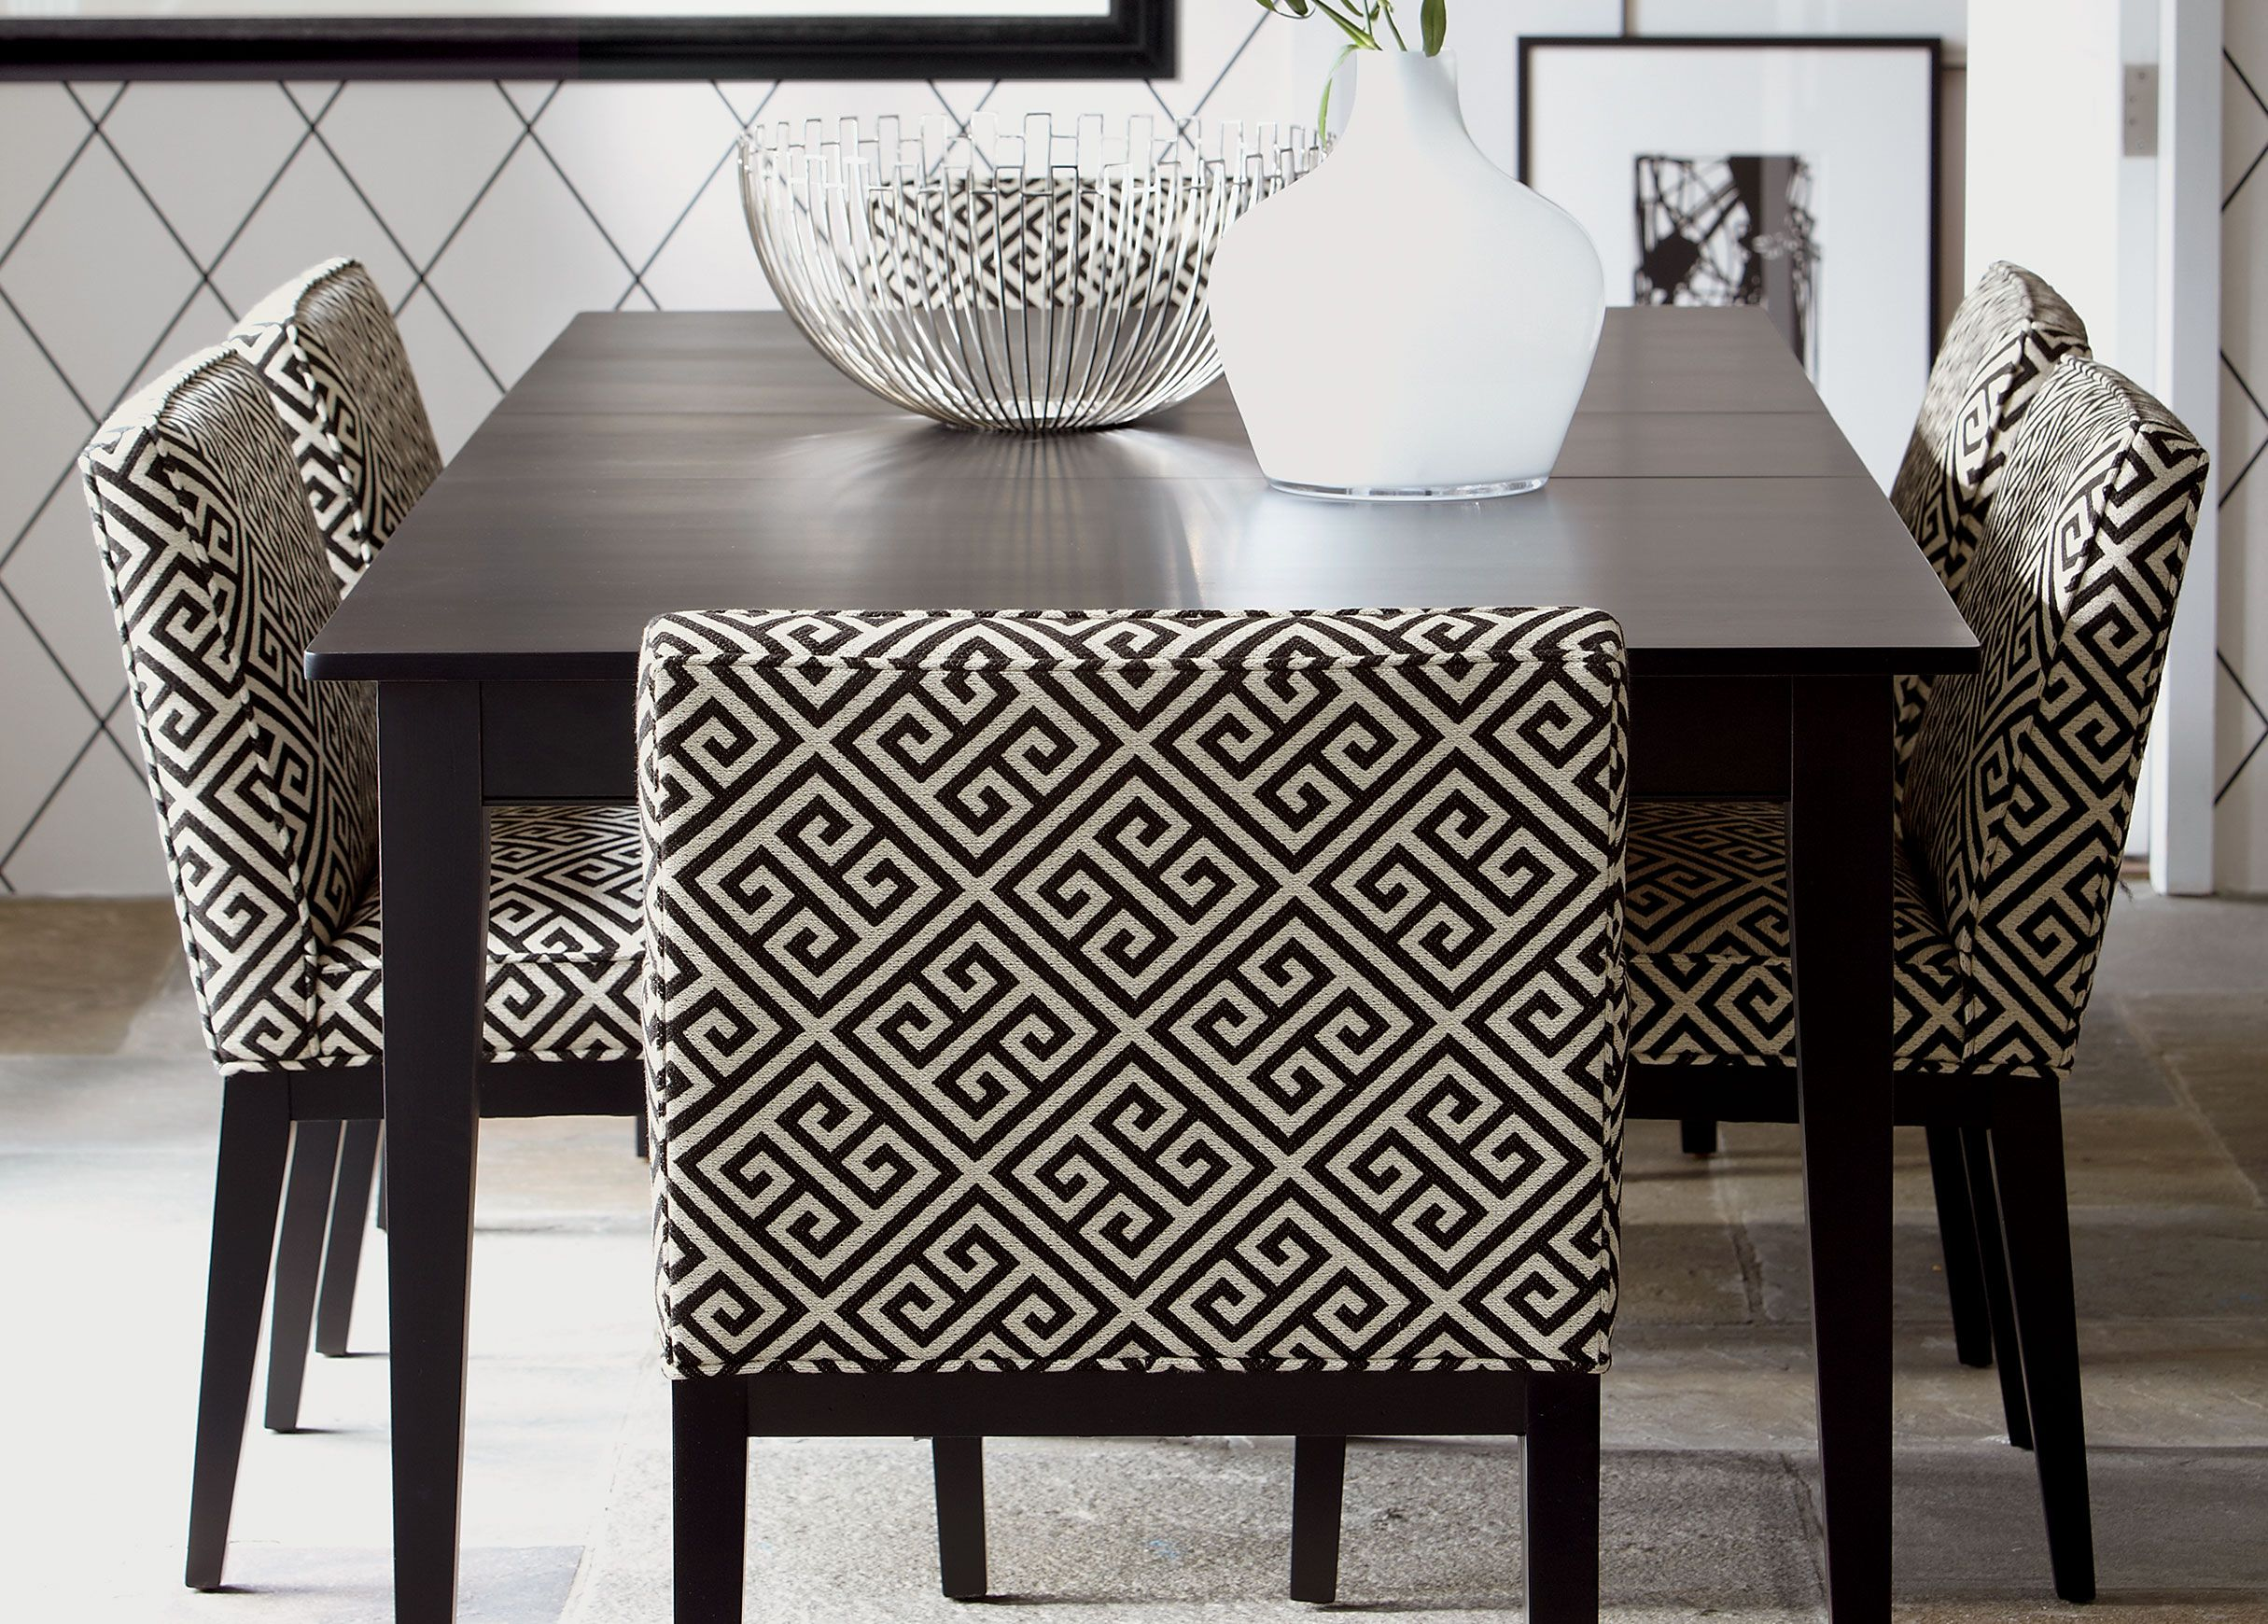 Using This Table, Yellow Upholstered Parsons Chairs And Gray Patterned  Armchairs At Head Of Table